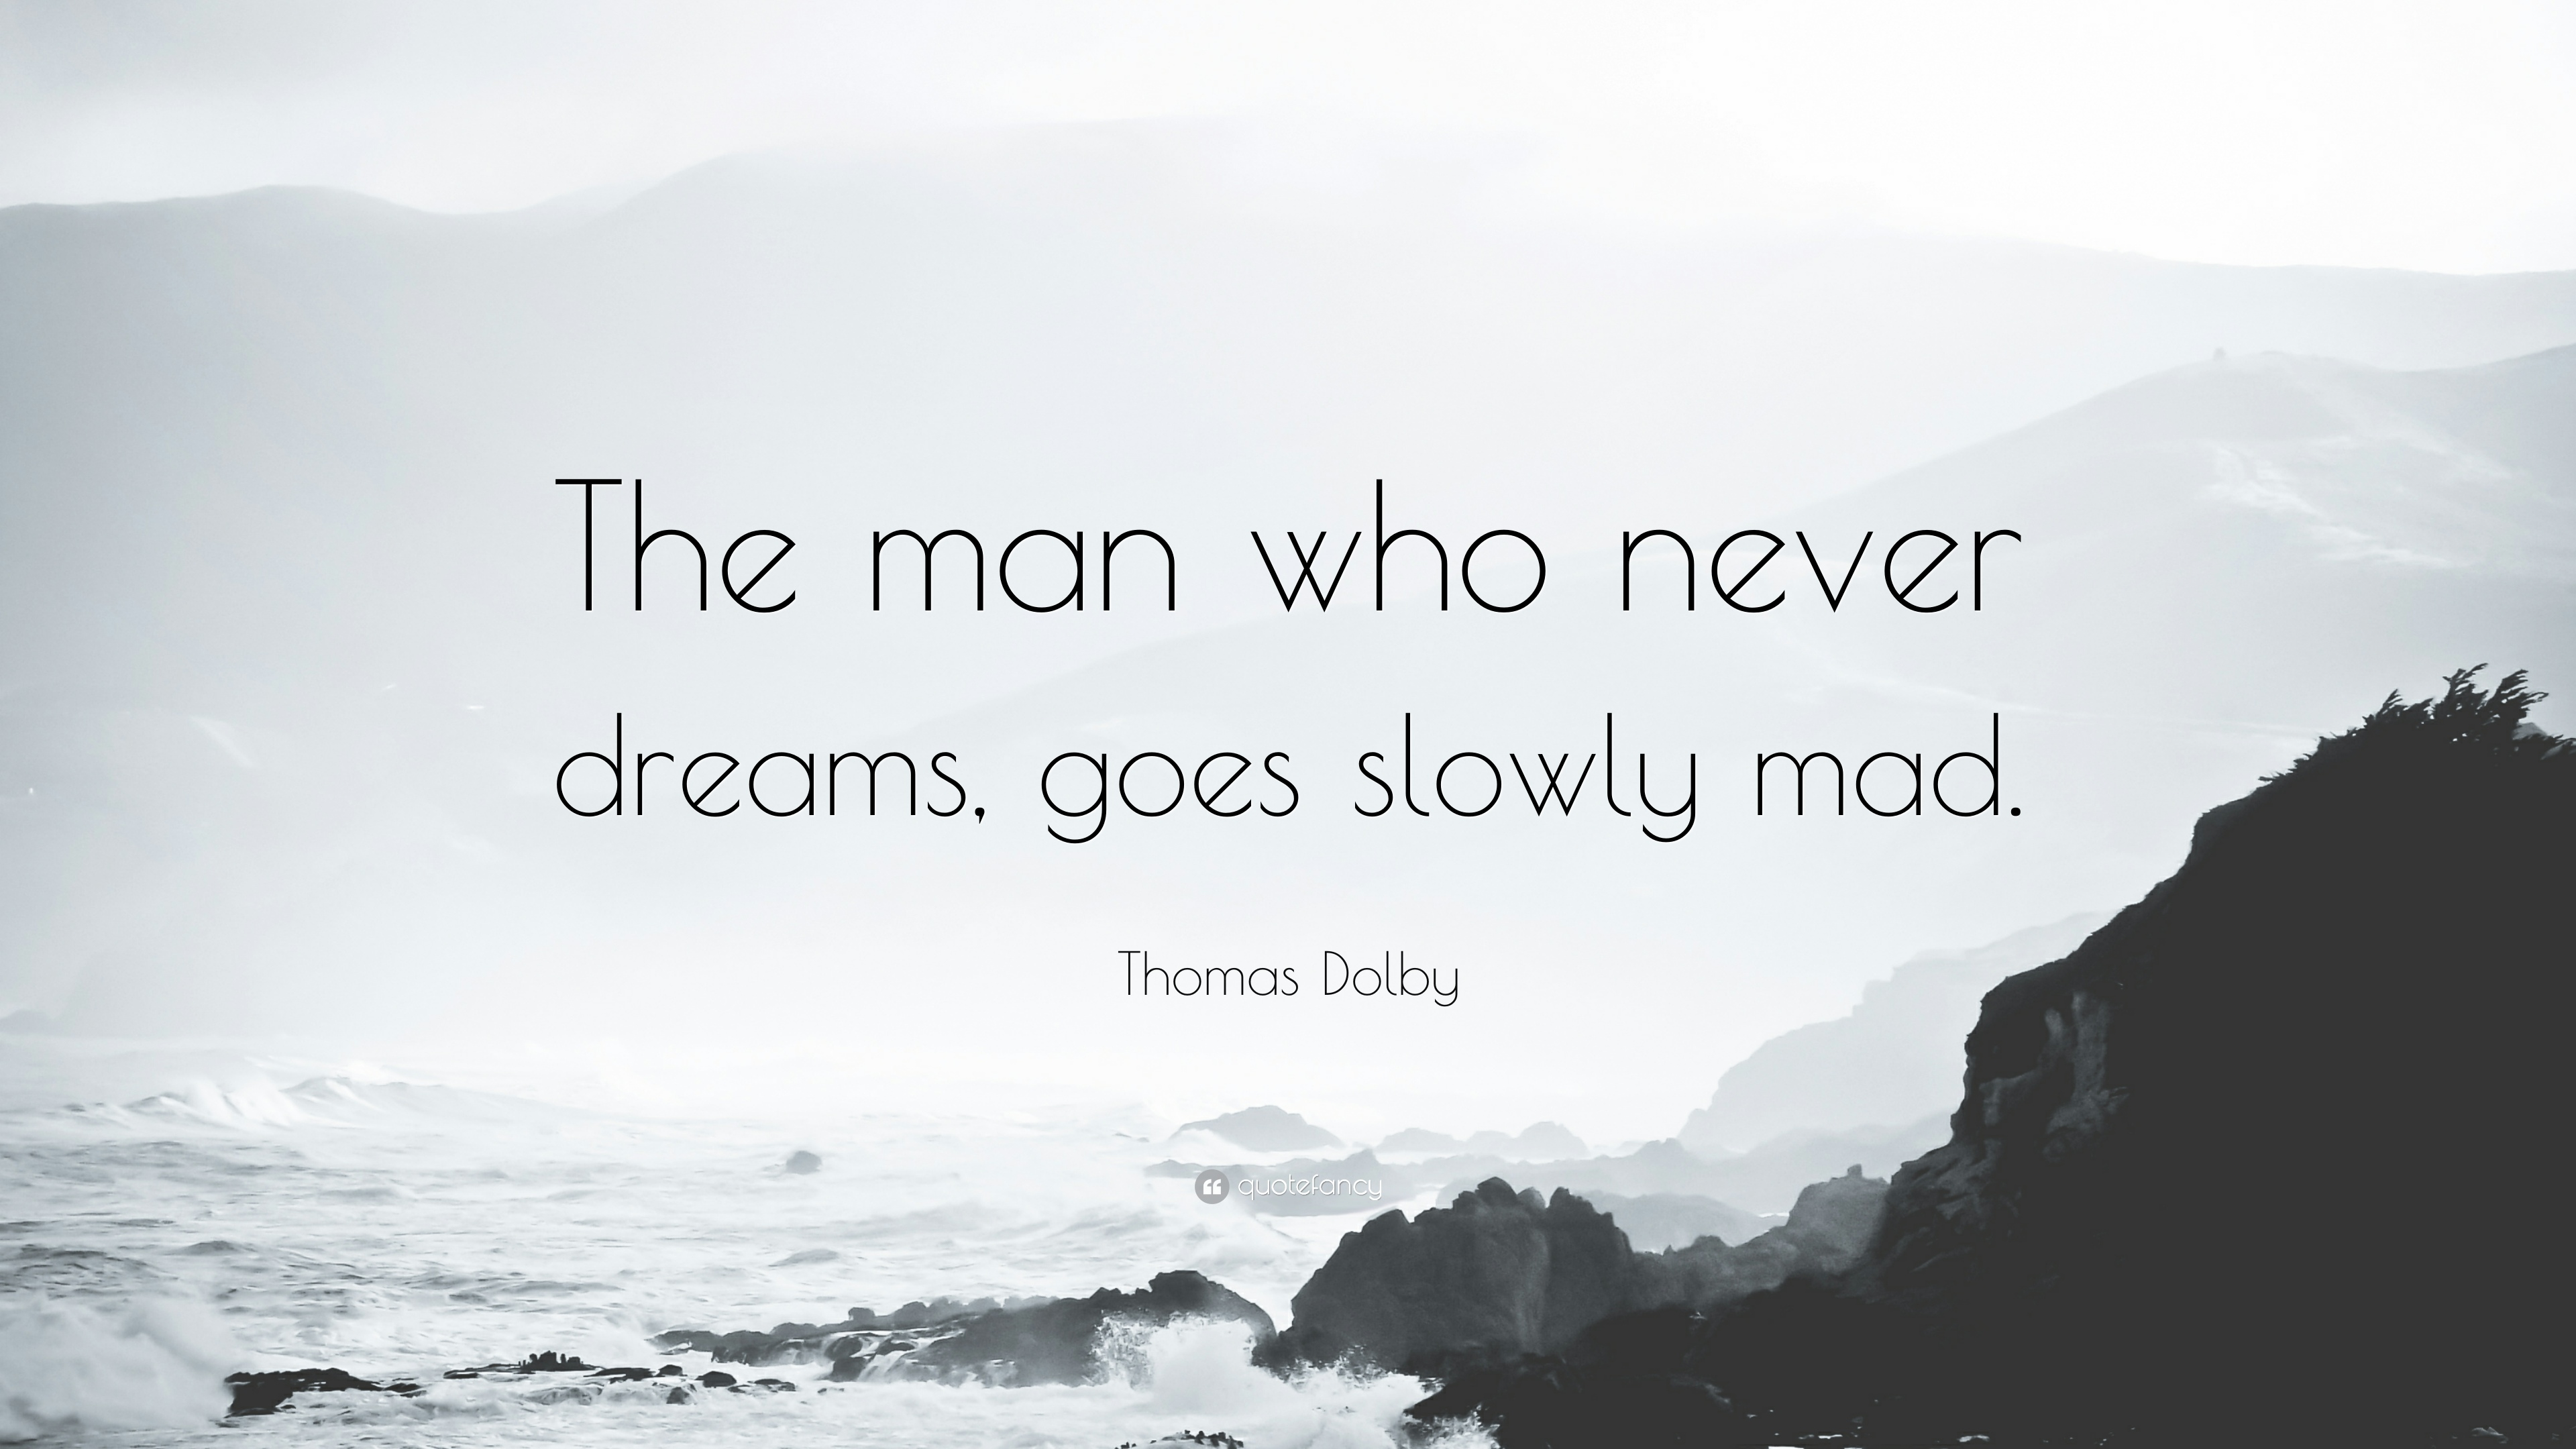 Thomas Dolby Quotes (19 wallpapers) - Quotefancy